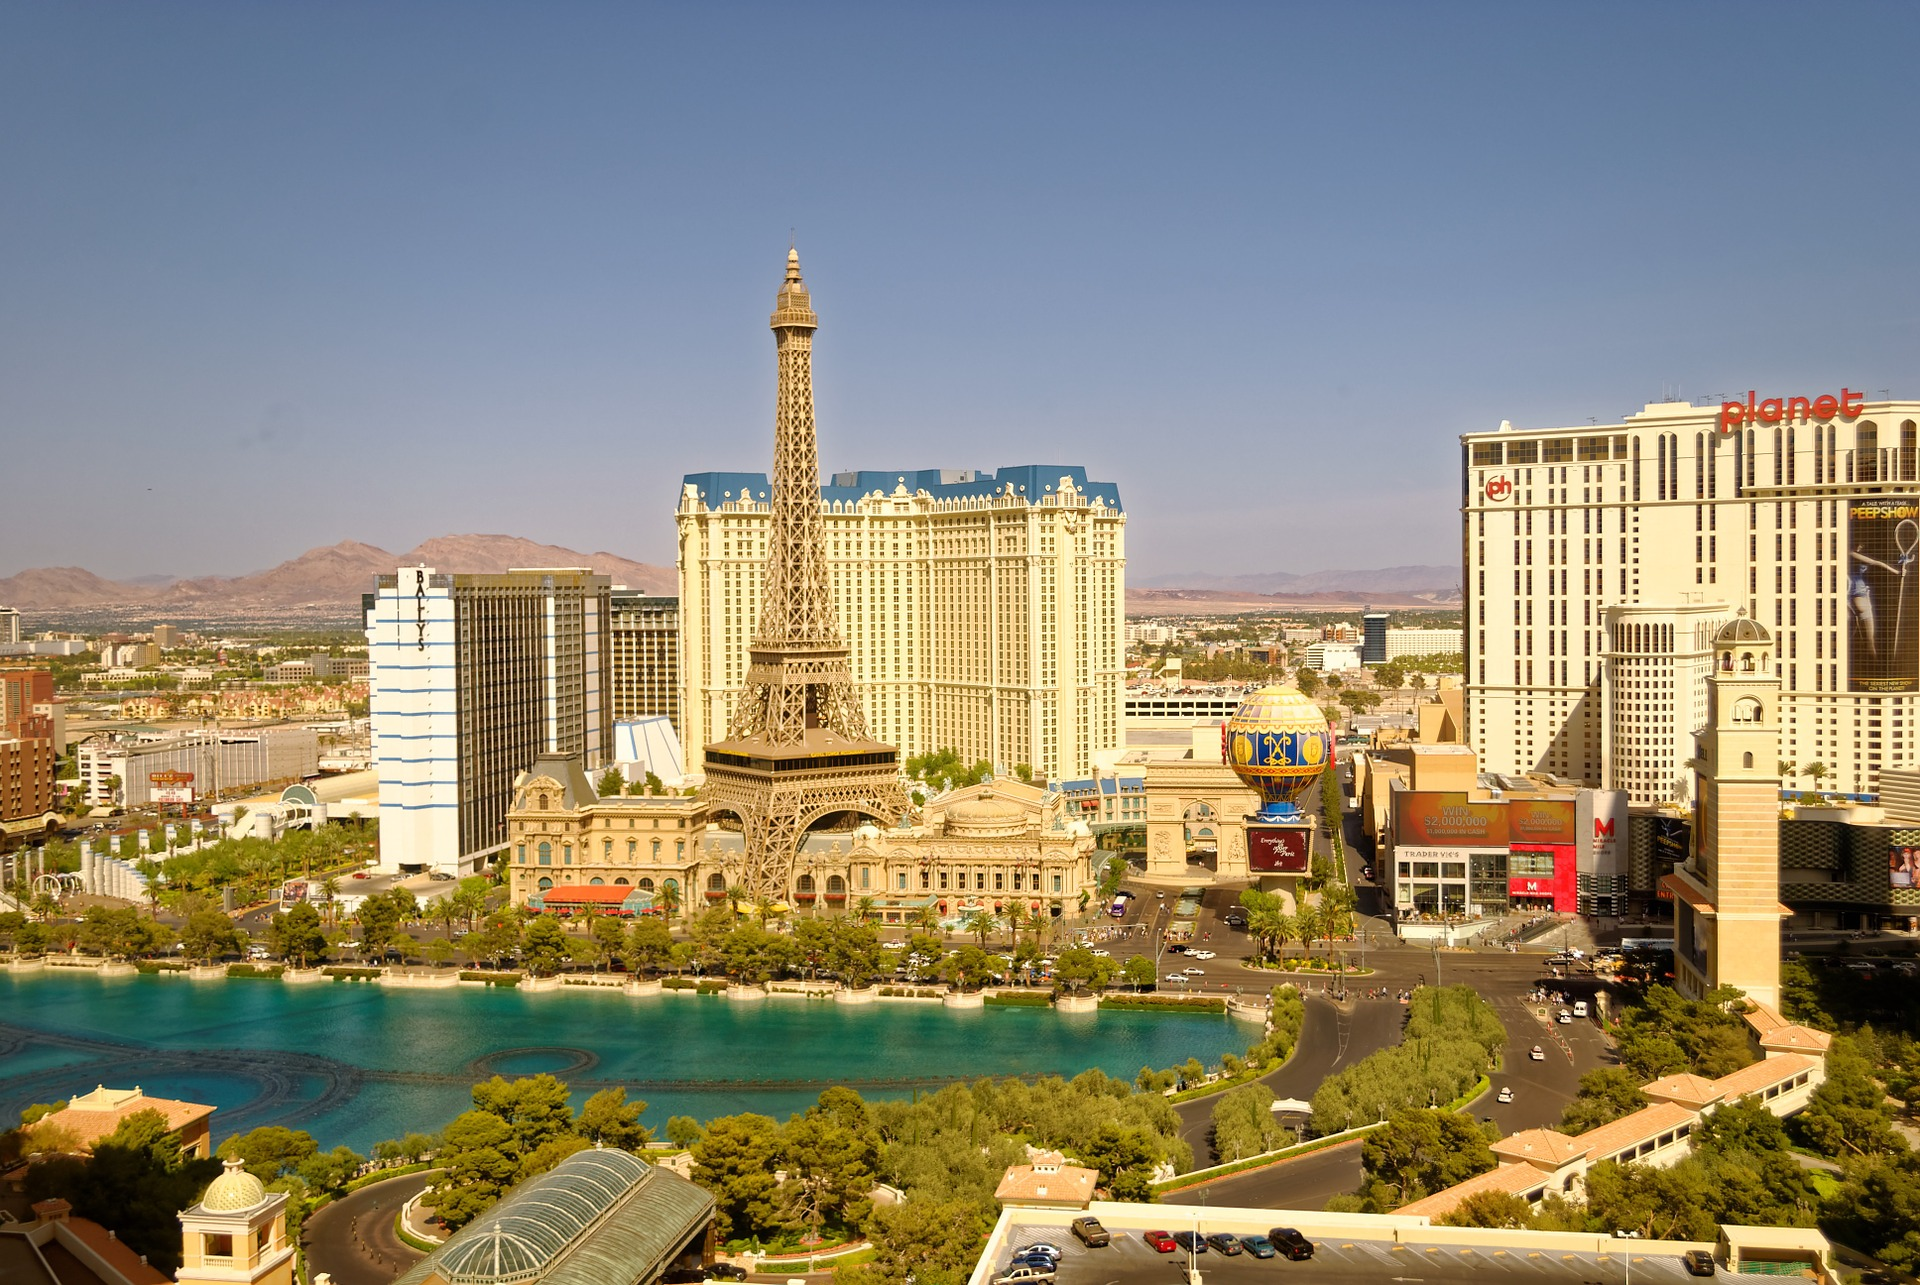 If you worry about moving to Las Vegas,don't! Economy here is great!